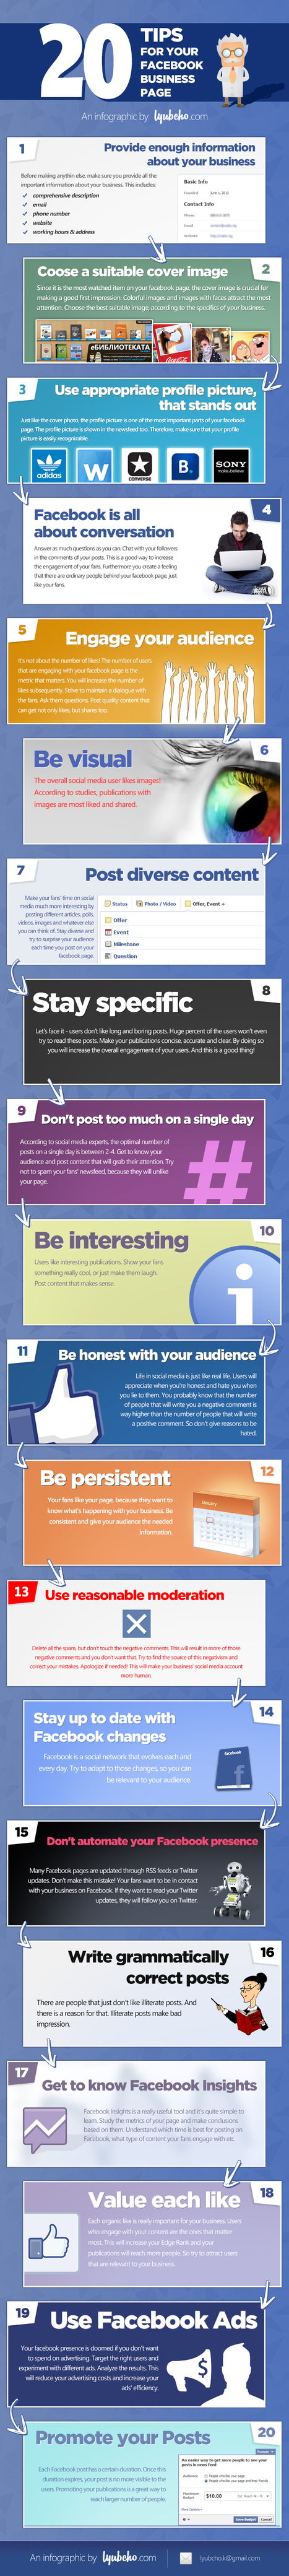 Infographic: 20 Tips for your Facebook Business Page | Viral Classified News | Scoop.it